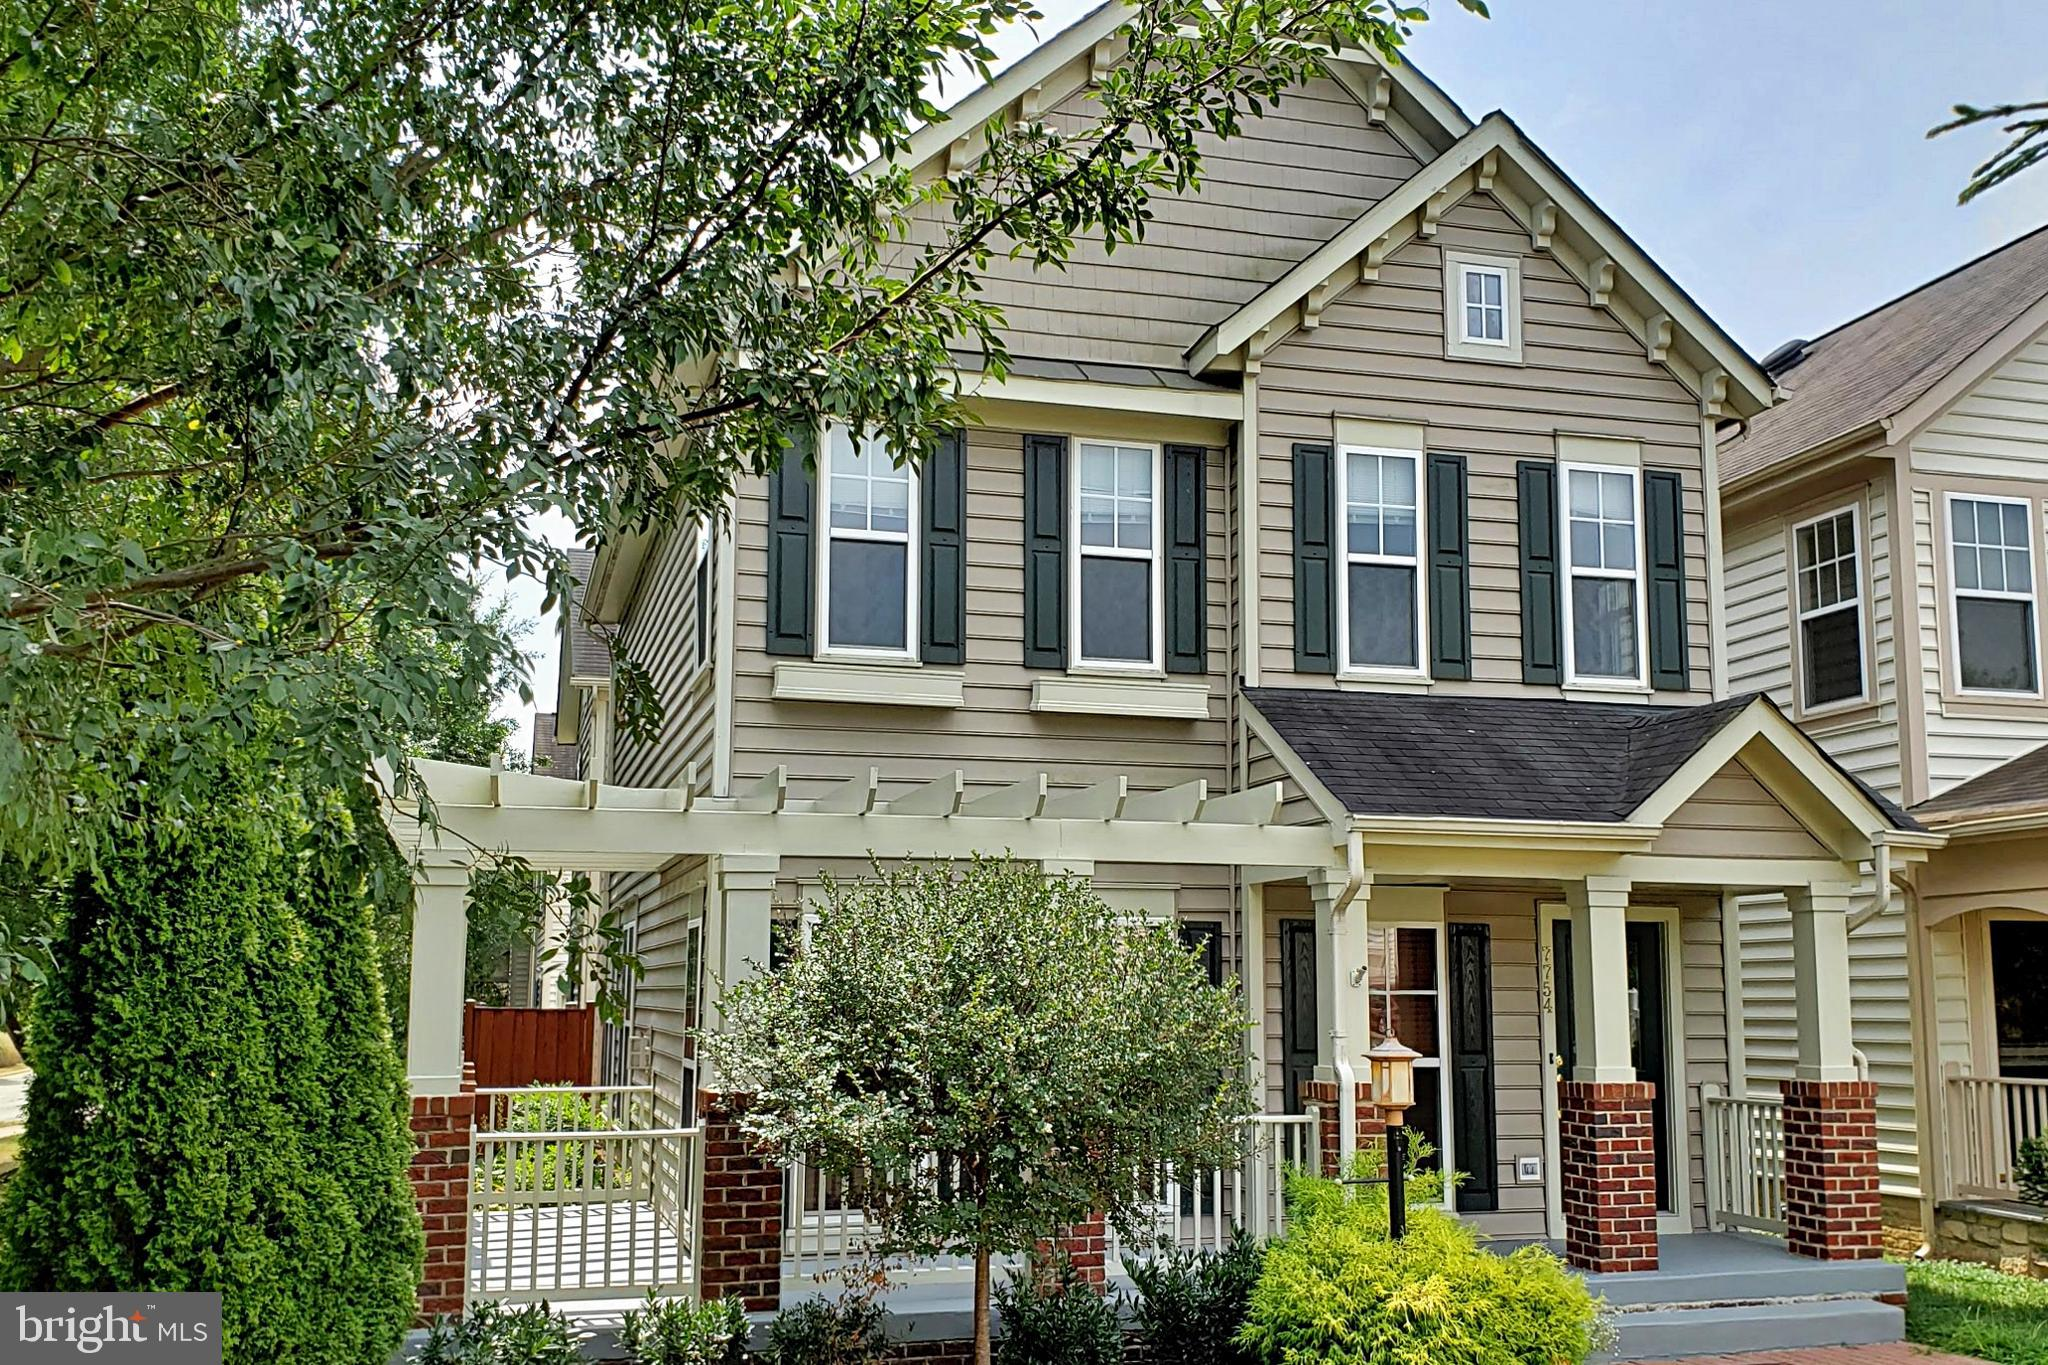 OPEN HOUSE Sunday 9/22, 1-3pm. Thoroughly upgraded Colonial in PRIME location just 1/2 mile to VRE train station and 1 mile to Amtrak station.  New carpet and fresh paint throughout.   Other recent upgrades include HVAC (2016) and bathrooms.  Spacious open floor plan - perfect for comfortable family living or gracious entertaining.  Hardwood floors on main level. Newer stainless steel kitchen appliances. Oversized windows provide abundant natural light throughout. 2 master suites, one with luxury bath, jacuzzi tub. 2 car attached garage.  Lower level media room with wine bar - wired for entertainment system.  Lots of storage space in basement.  Wraparound front porch overlooks common lawn area, and fenced in side patio.  Excellent HOA amenities, including swimming pool, clubhouse, tennis court, playground.  Stones throw from Lorton Town Center shops & restaurants and Vamoose bus to NYC.